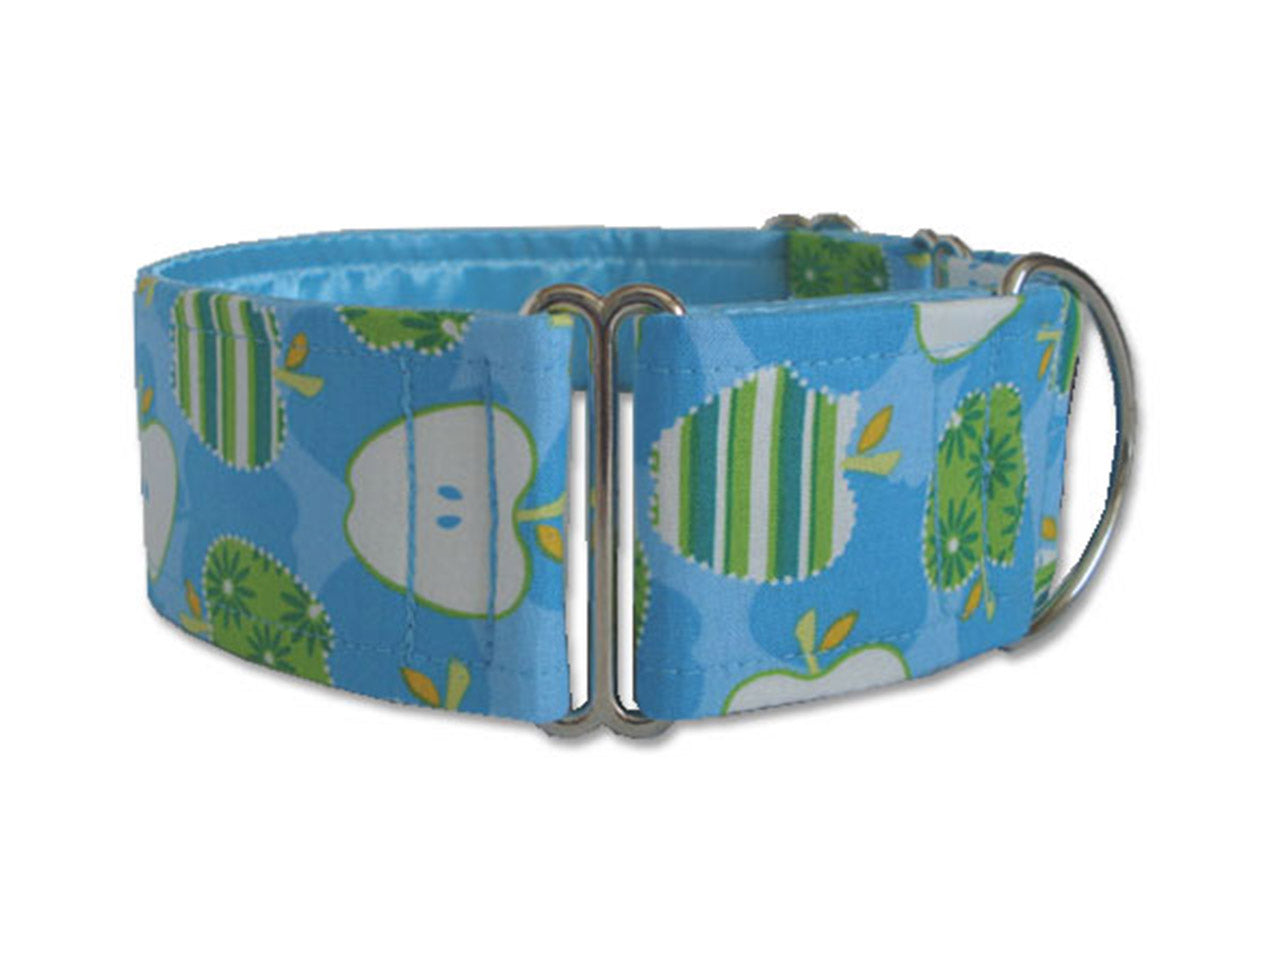 Cheerful apples in green stripes on pretty blue will put a spring in your pup's step any time of the year!